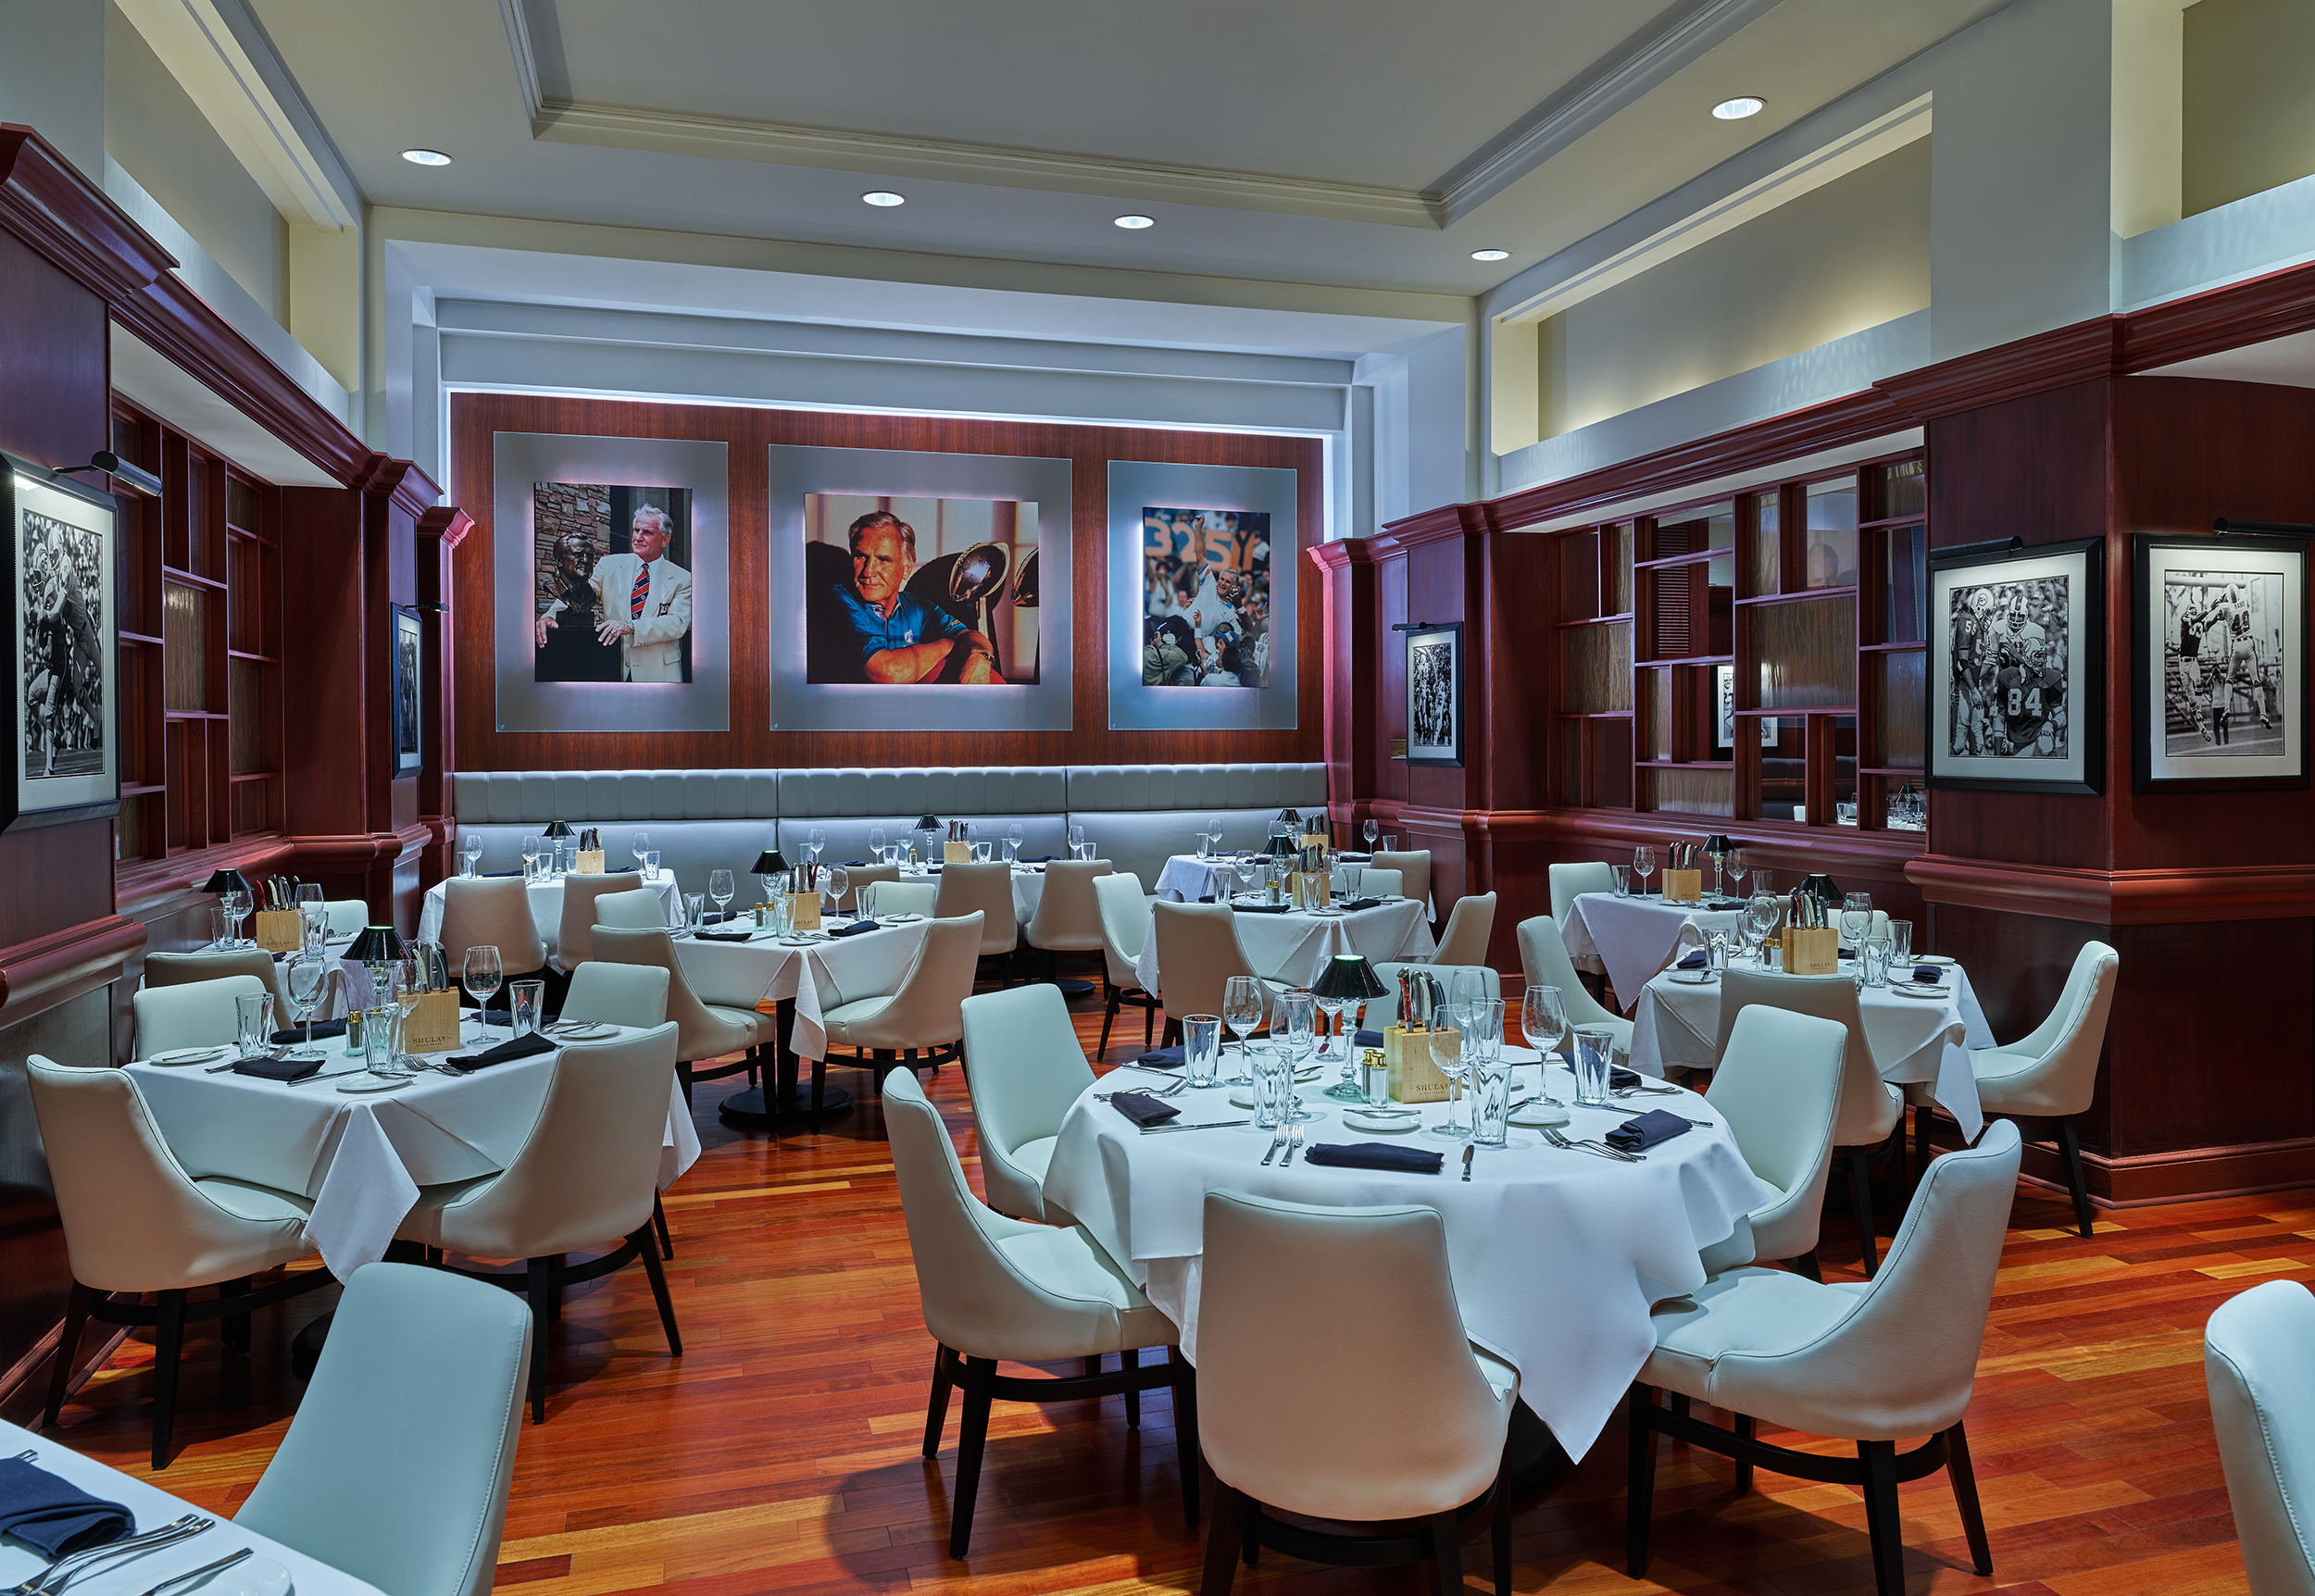 Main dining room in Shula's Steak House at the Walt Disney World Dolphin Resort